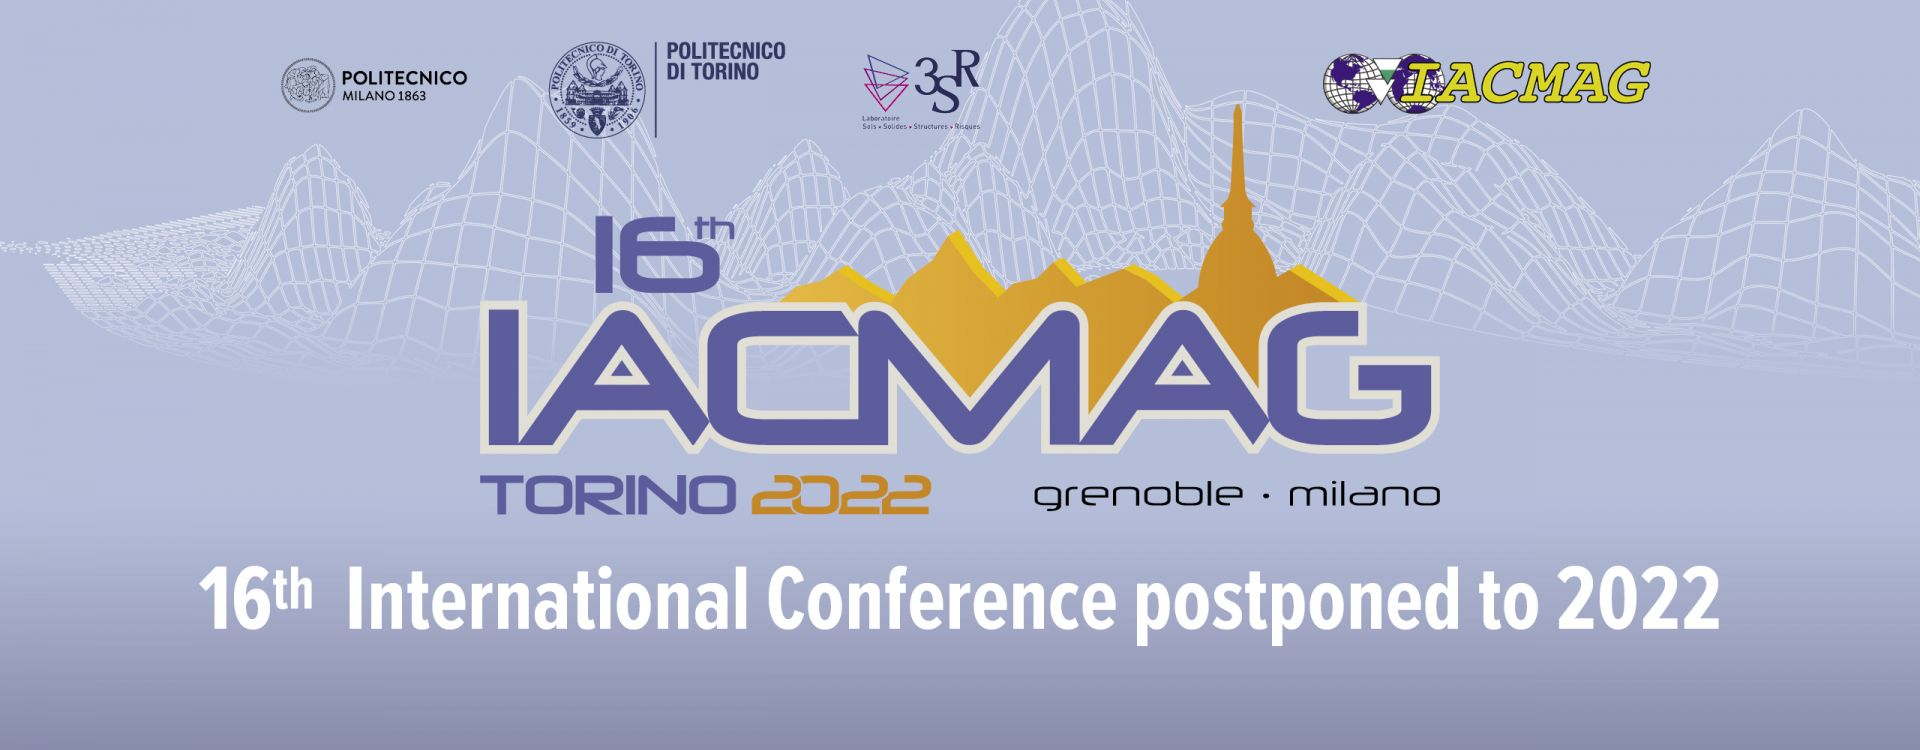 16th International Conference of IACMAG